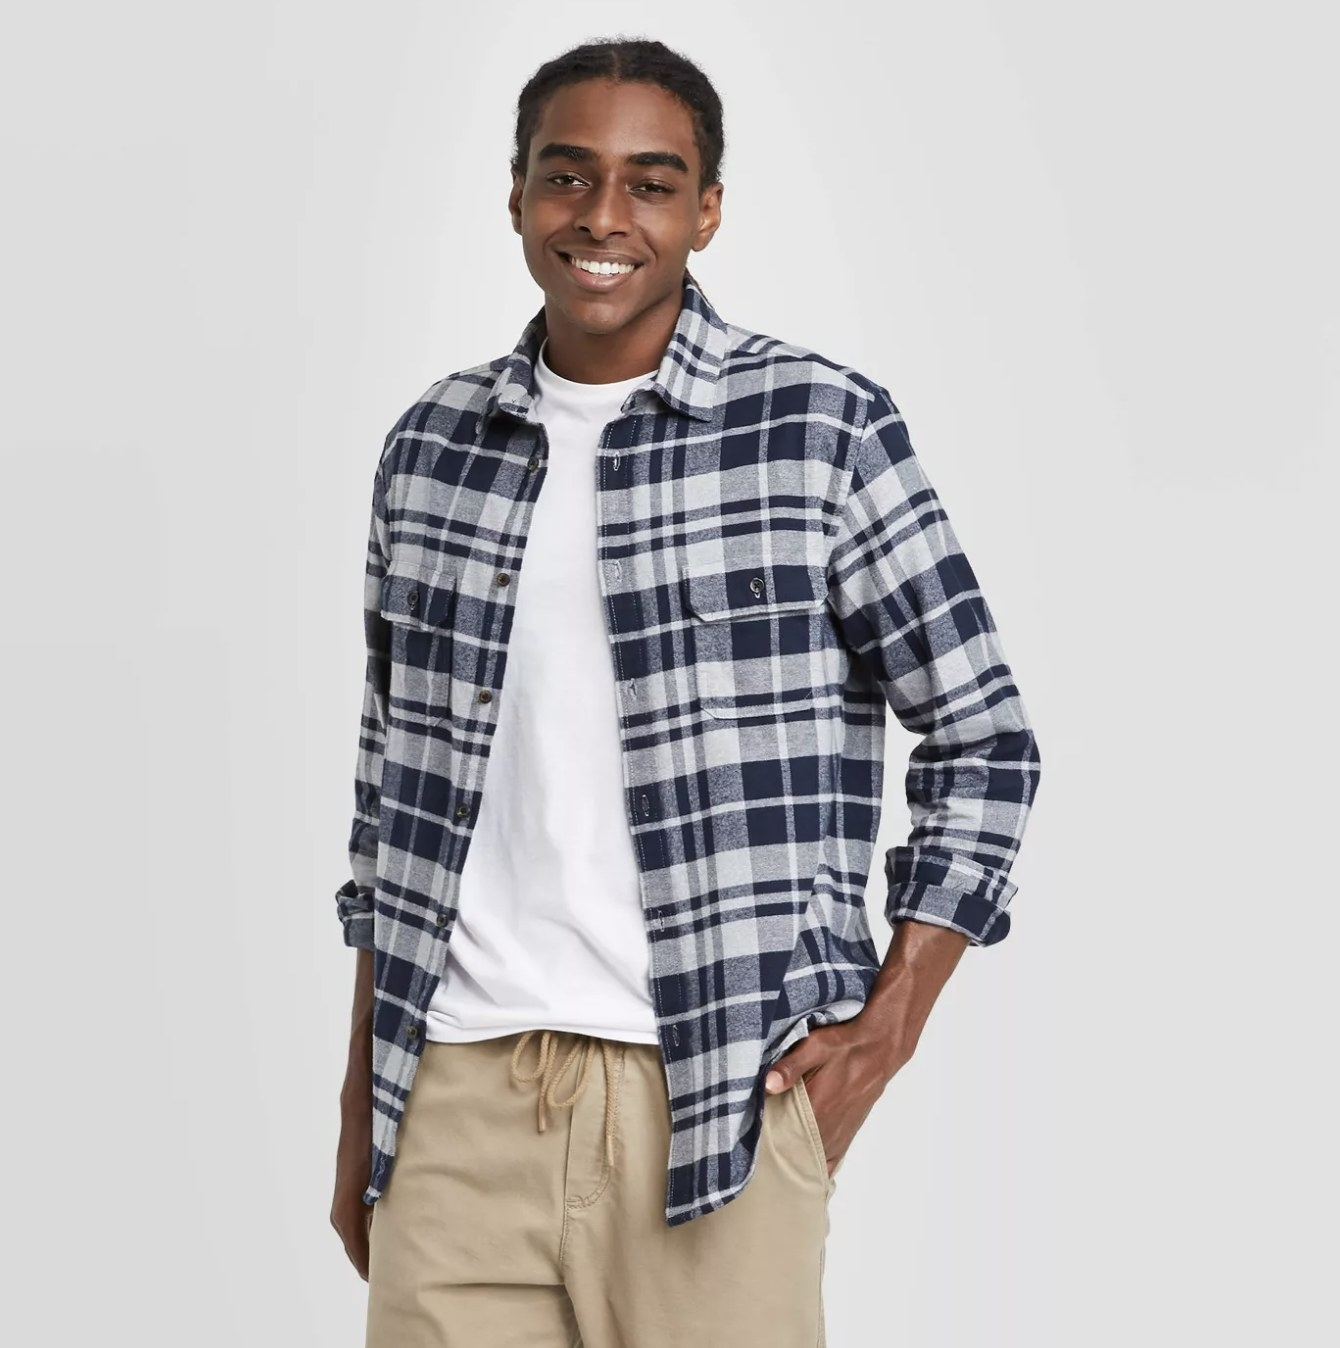 Model is wearing a black and white flannel shirt over a white tee and khaki pants